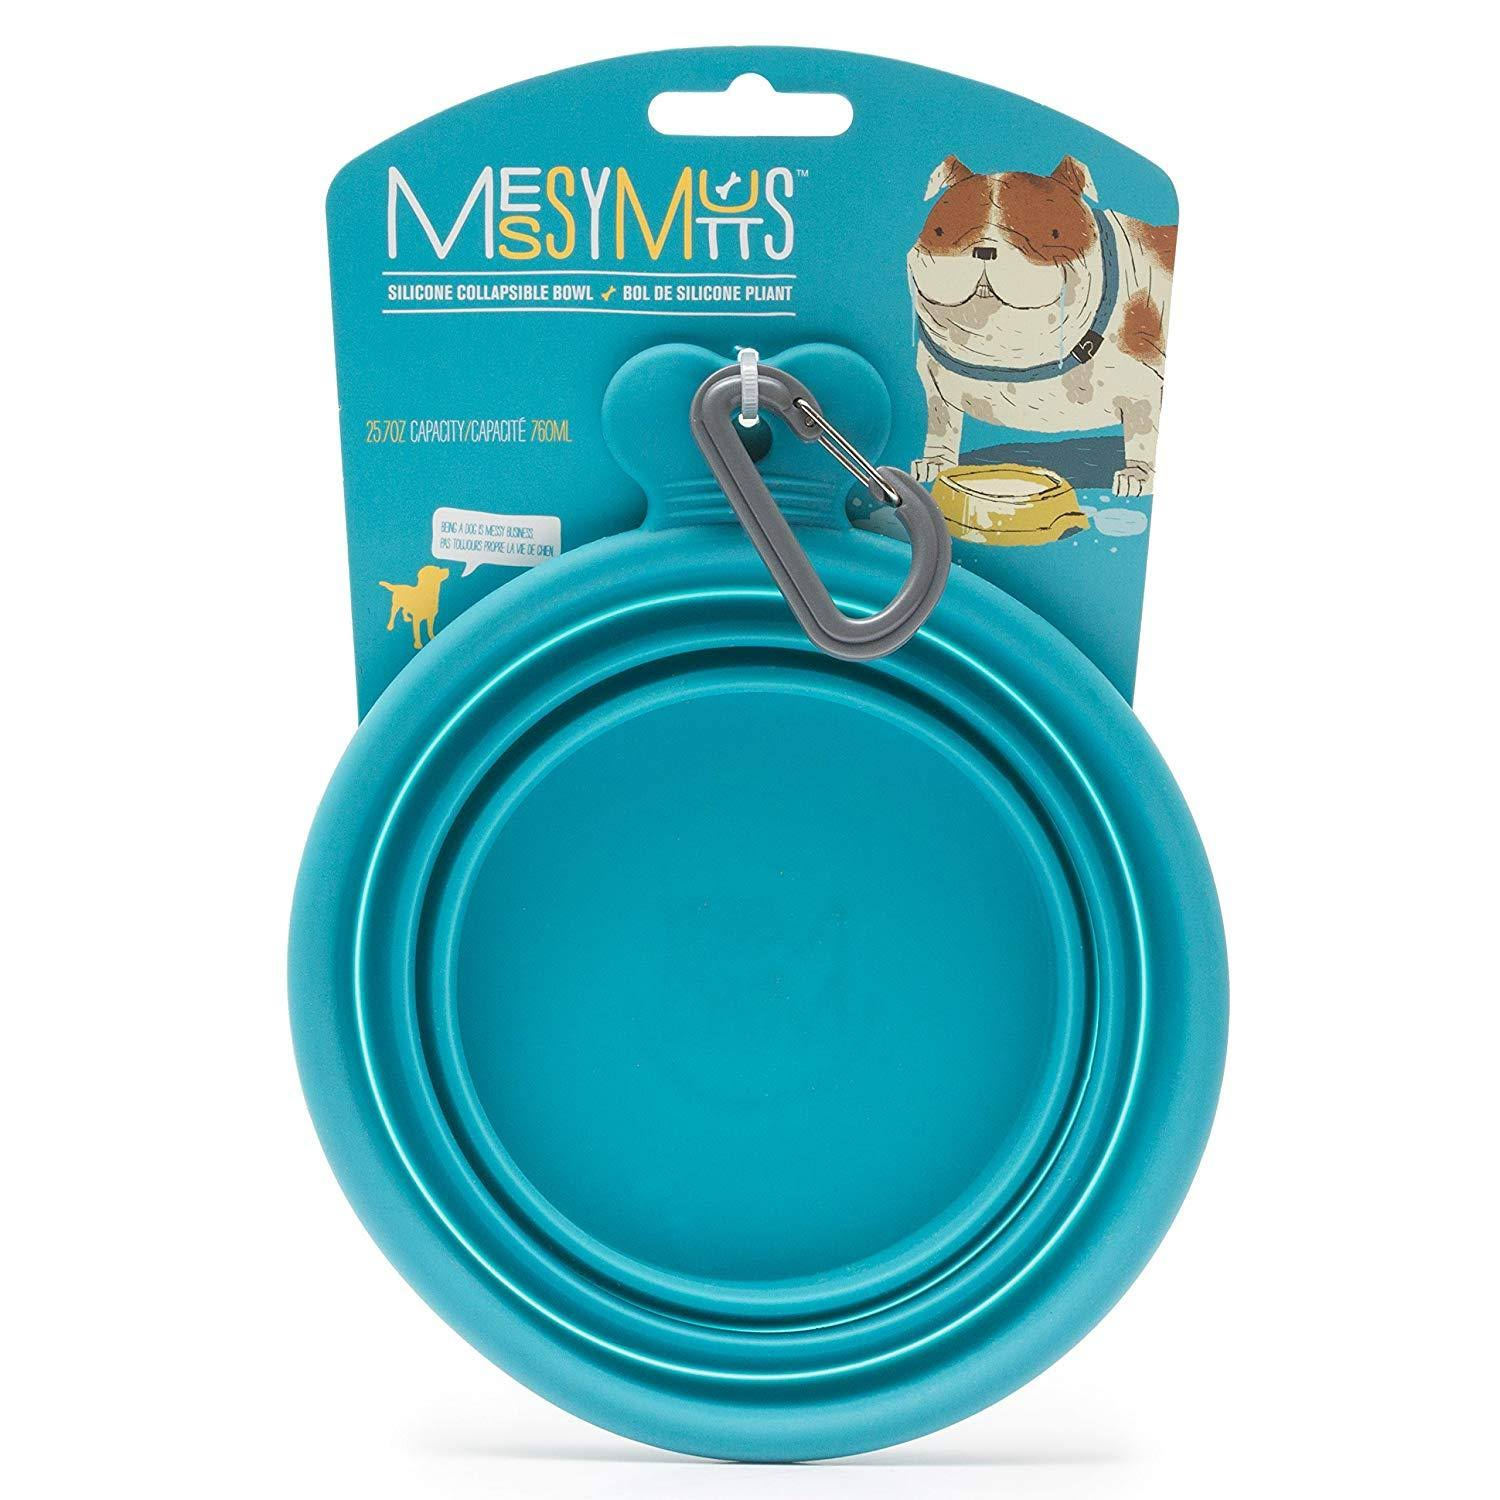 Messy Mutts Silicone Collapsible Dog Bowl - 3.25cups